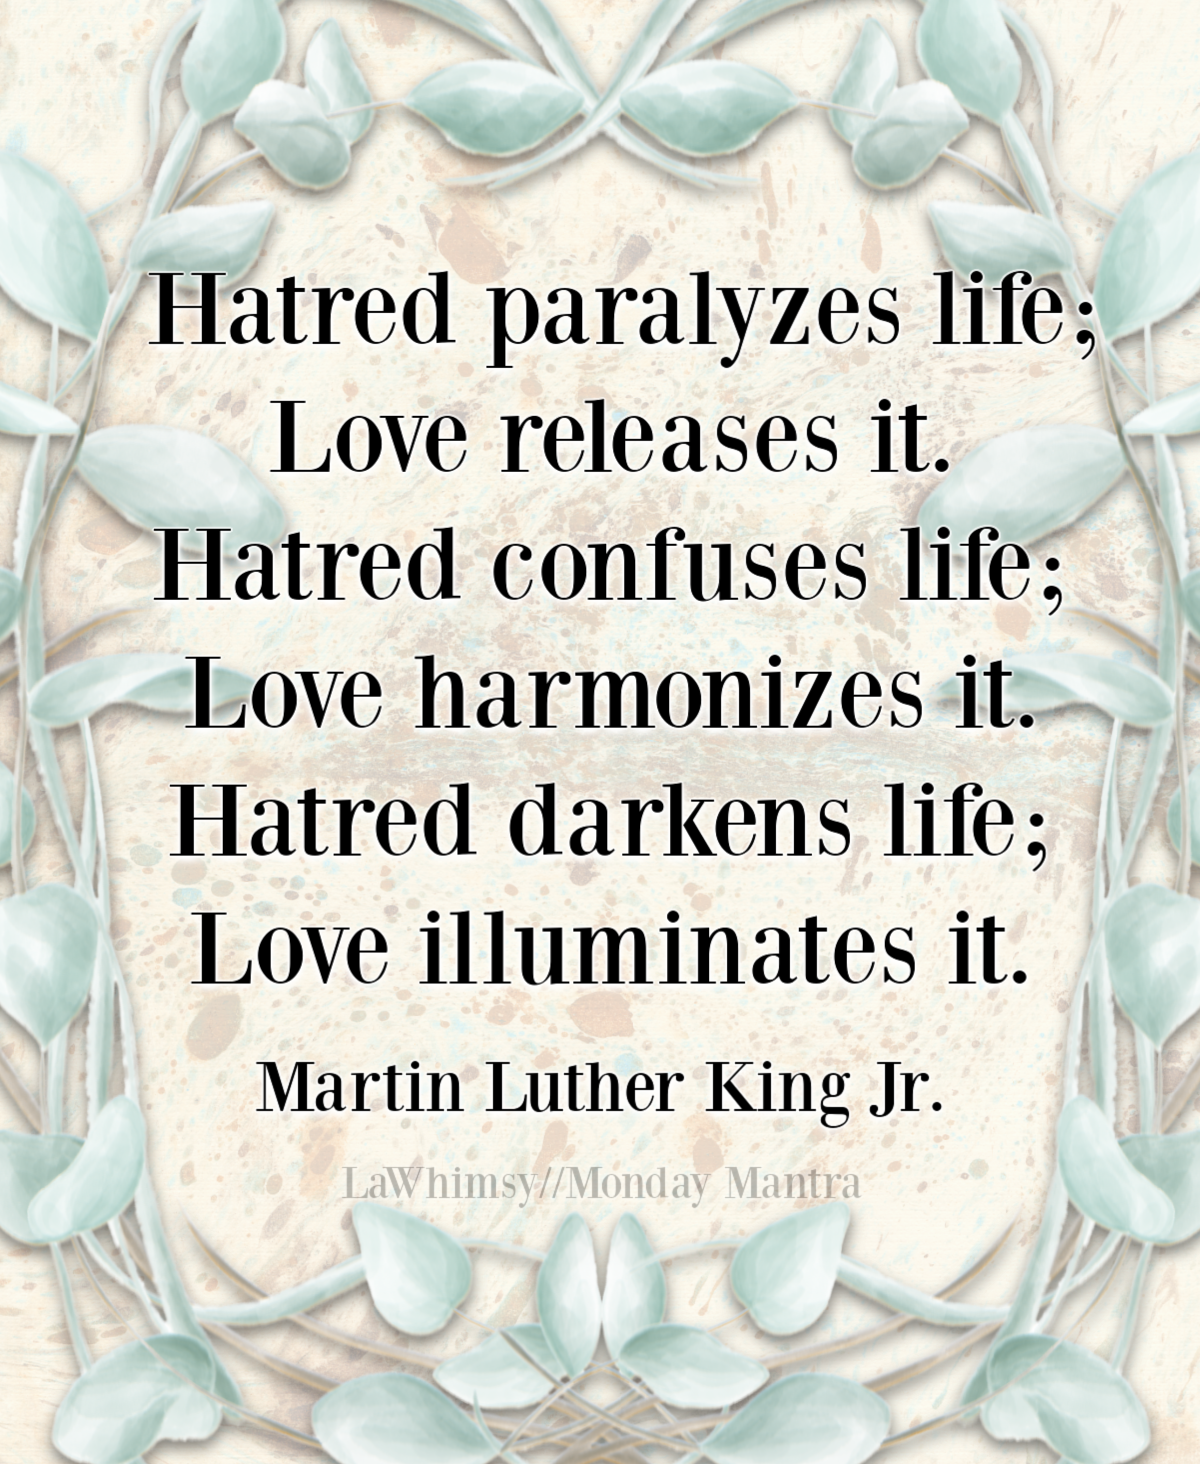 Hatred paralyzes life; love releases it Martin Luther King Jr quote Monday Mantra 290 via LaWhimsy